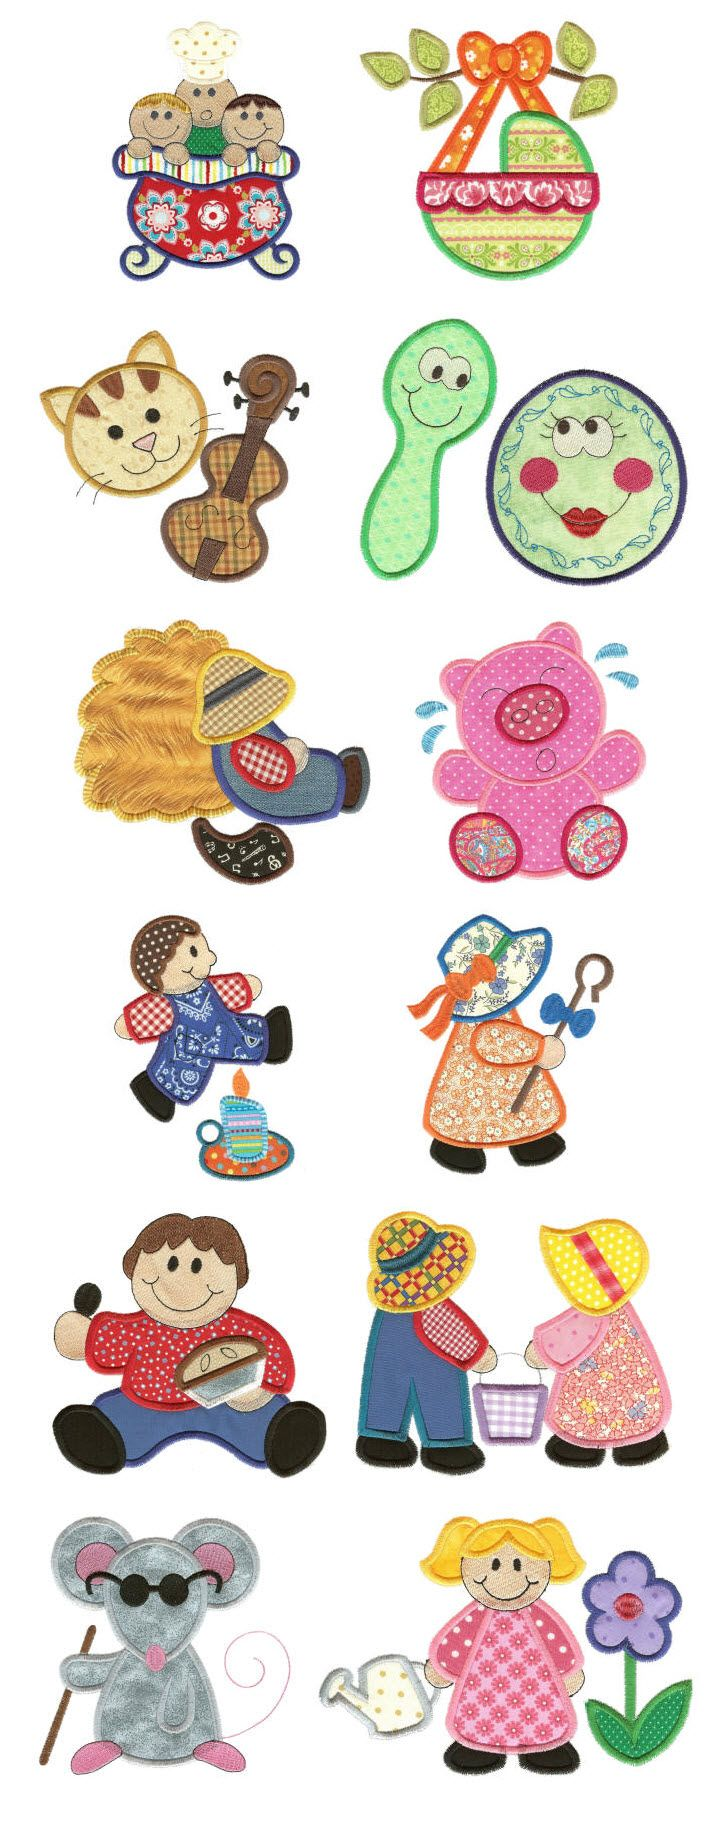 Embroidery | Free Machine Embroidery Designs | Nursery Rhymes Applique Set 2